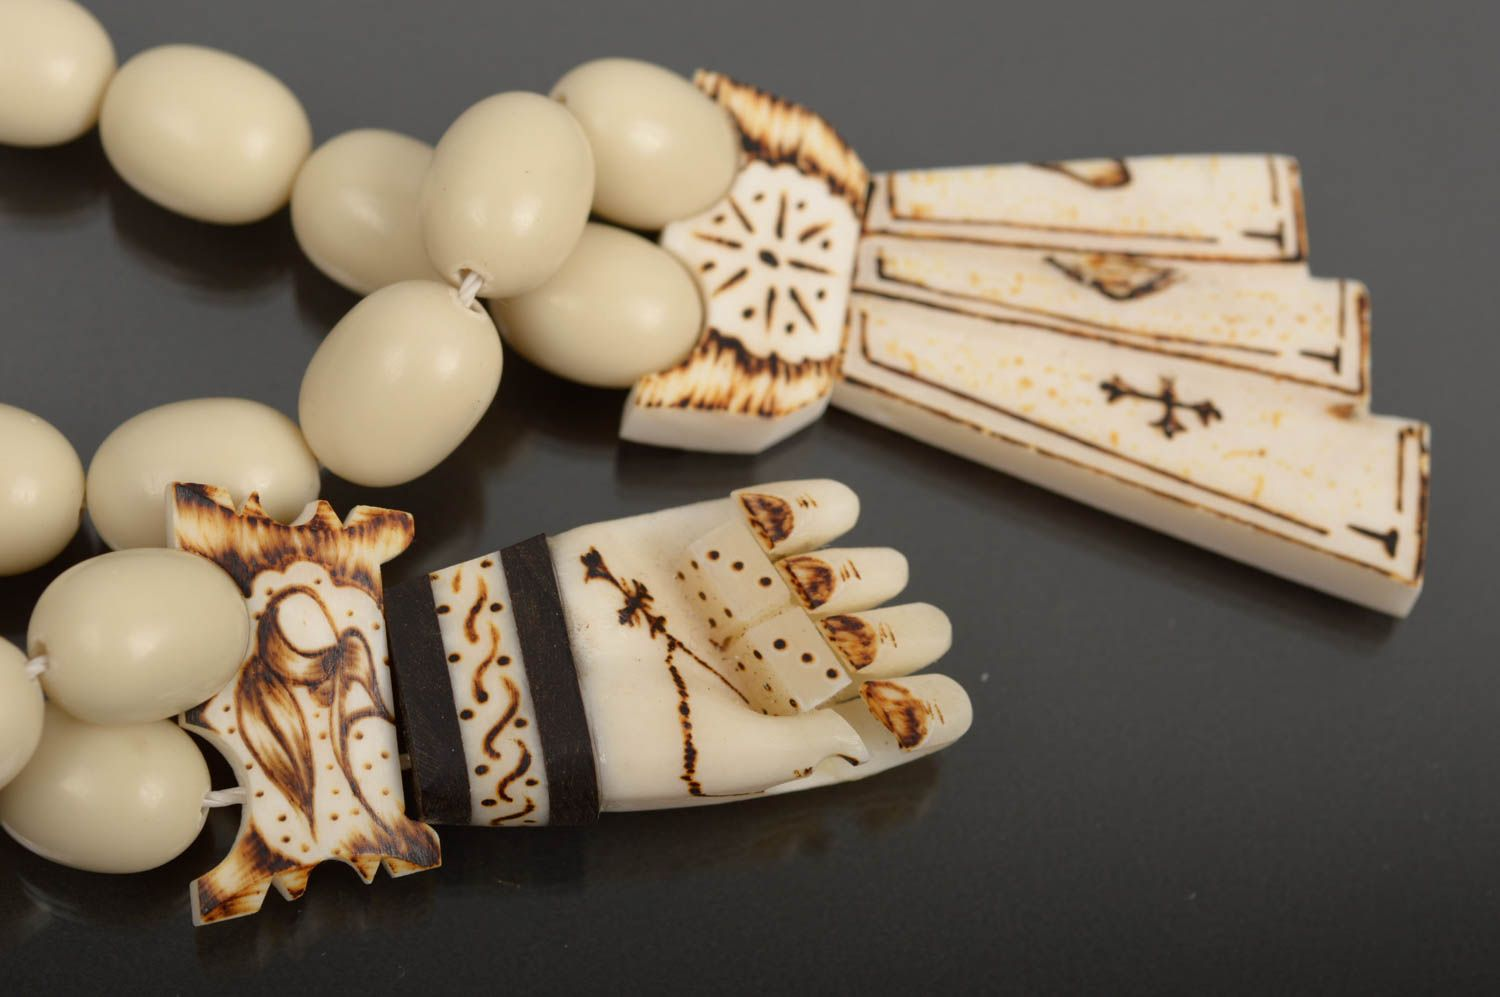 rosary beads Handmade rosary designer souvenir unusual gift bone rosary church utensils - MADEheart.com